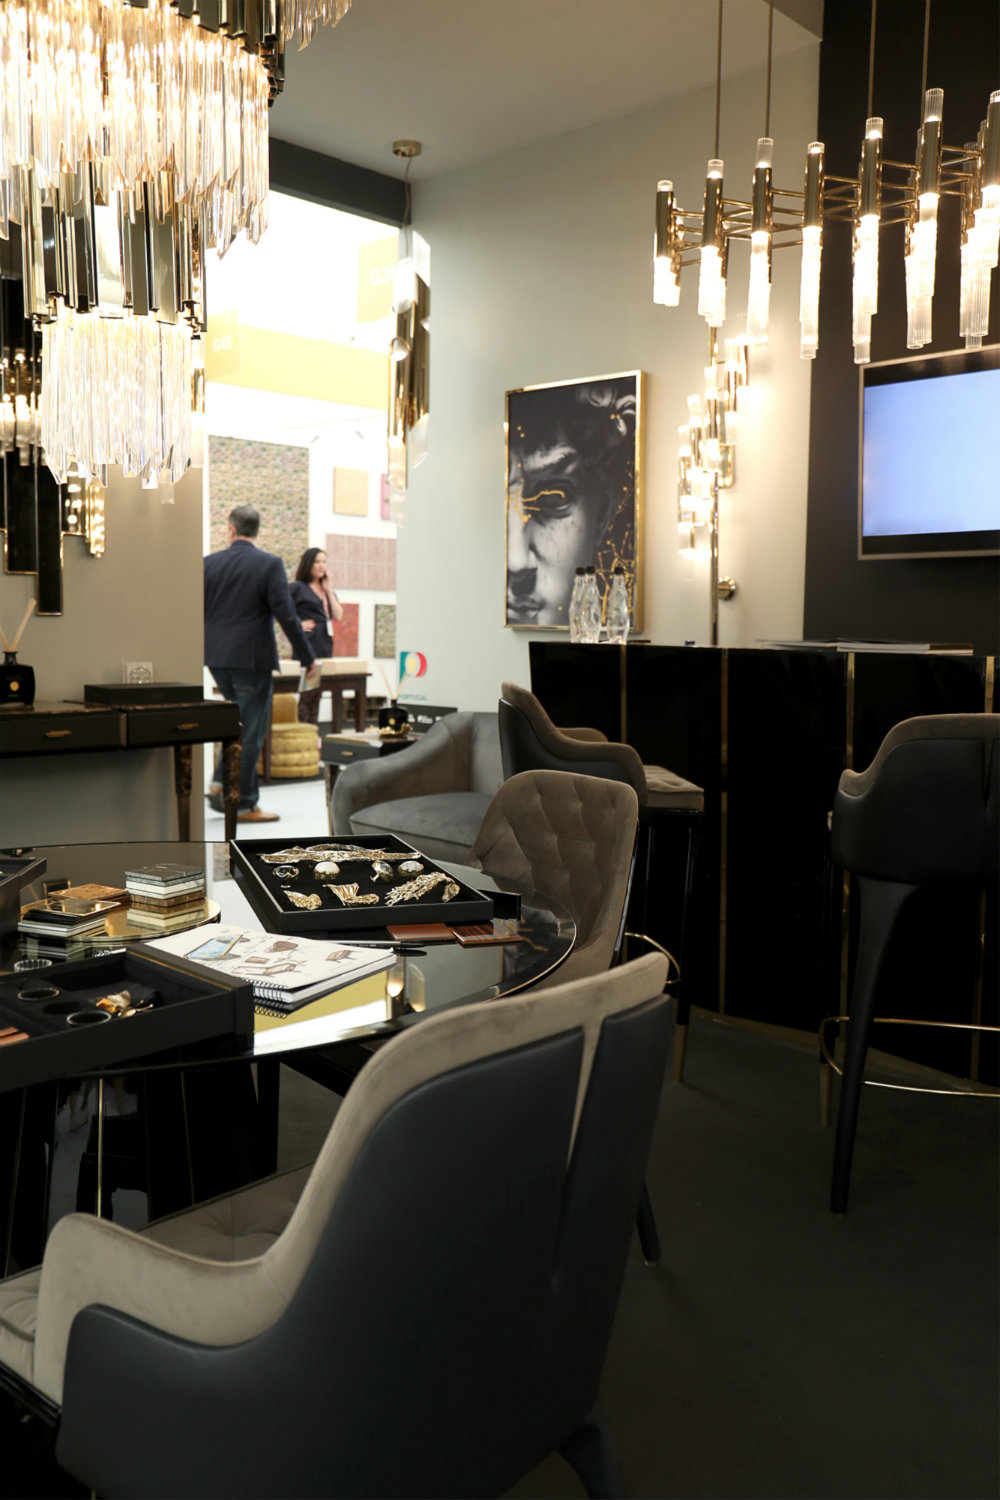 The Highlights From LUXXU Exhibition at Decorex 2018 05 Decorex 2018 The Highlights From LUXXU Exhibition at Decorex 2018 The Highlights From LUXXU Exhibition at Decorex 2018 05